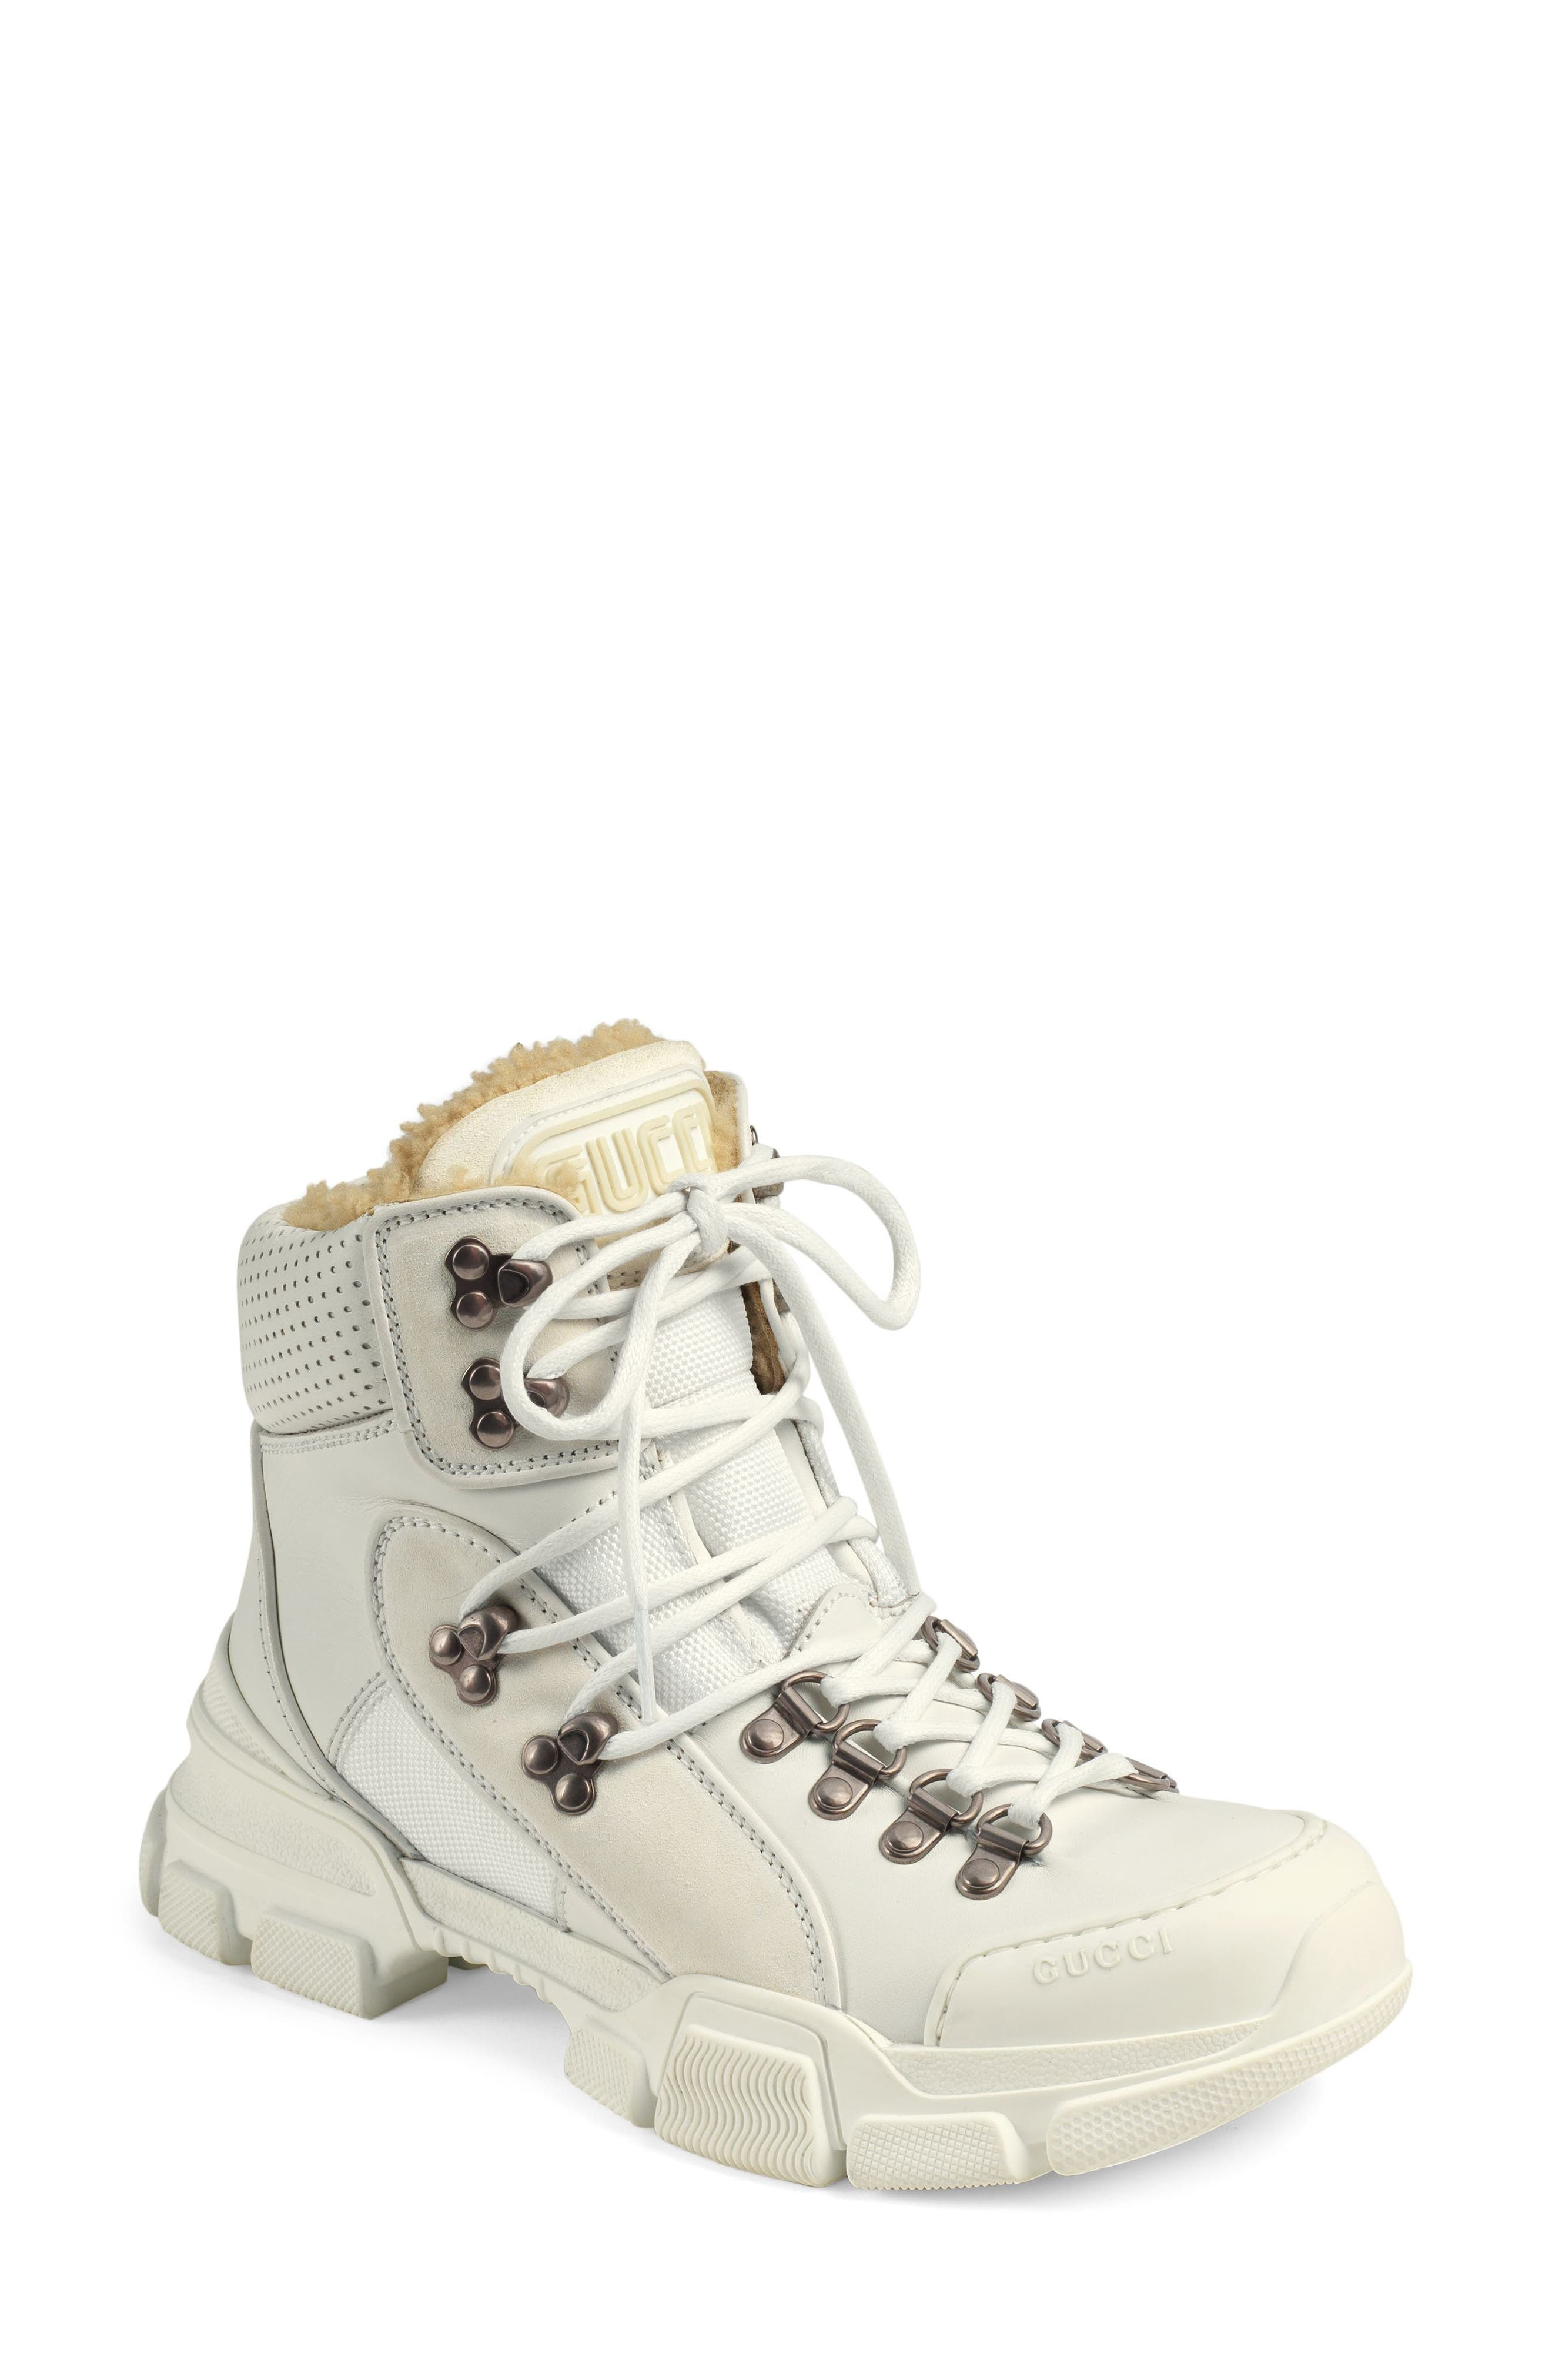 Gucci Journey Genuine Shearling Hiker Boot, White